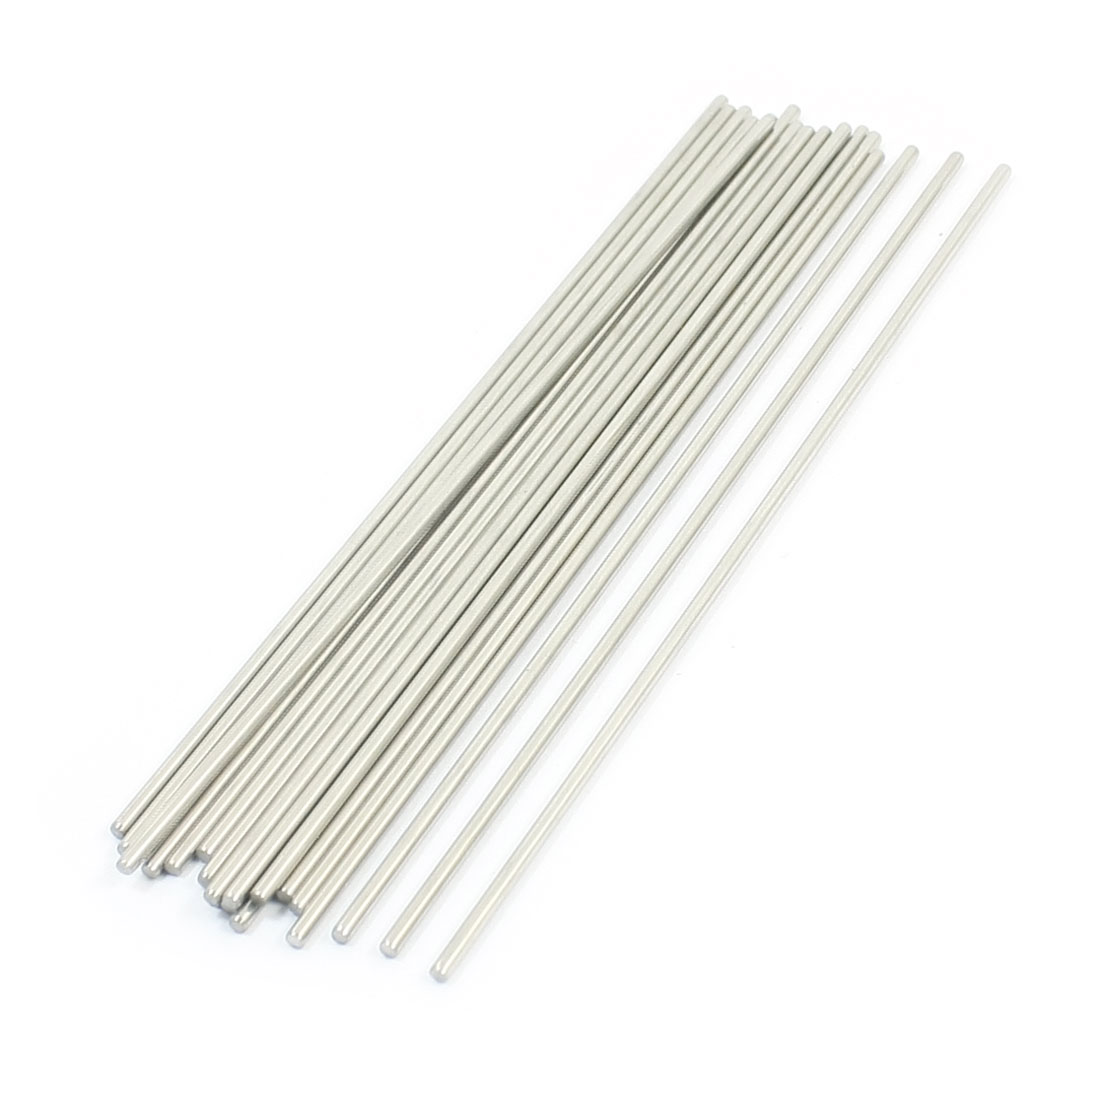 20PCS Stainless Steel 140mm Long 2mm Dia Round Rod Shafts for RC Model